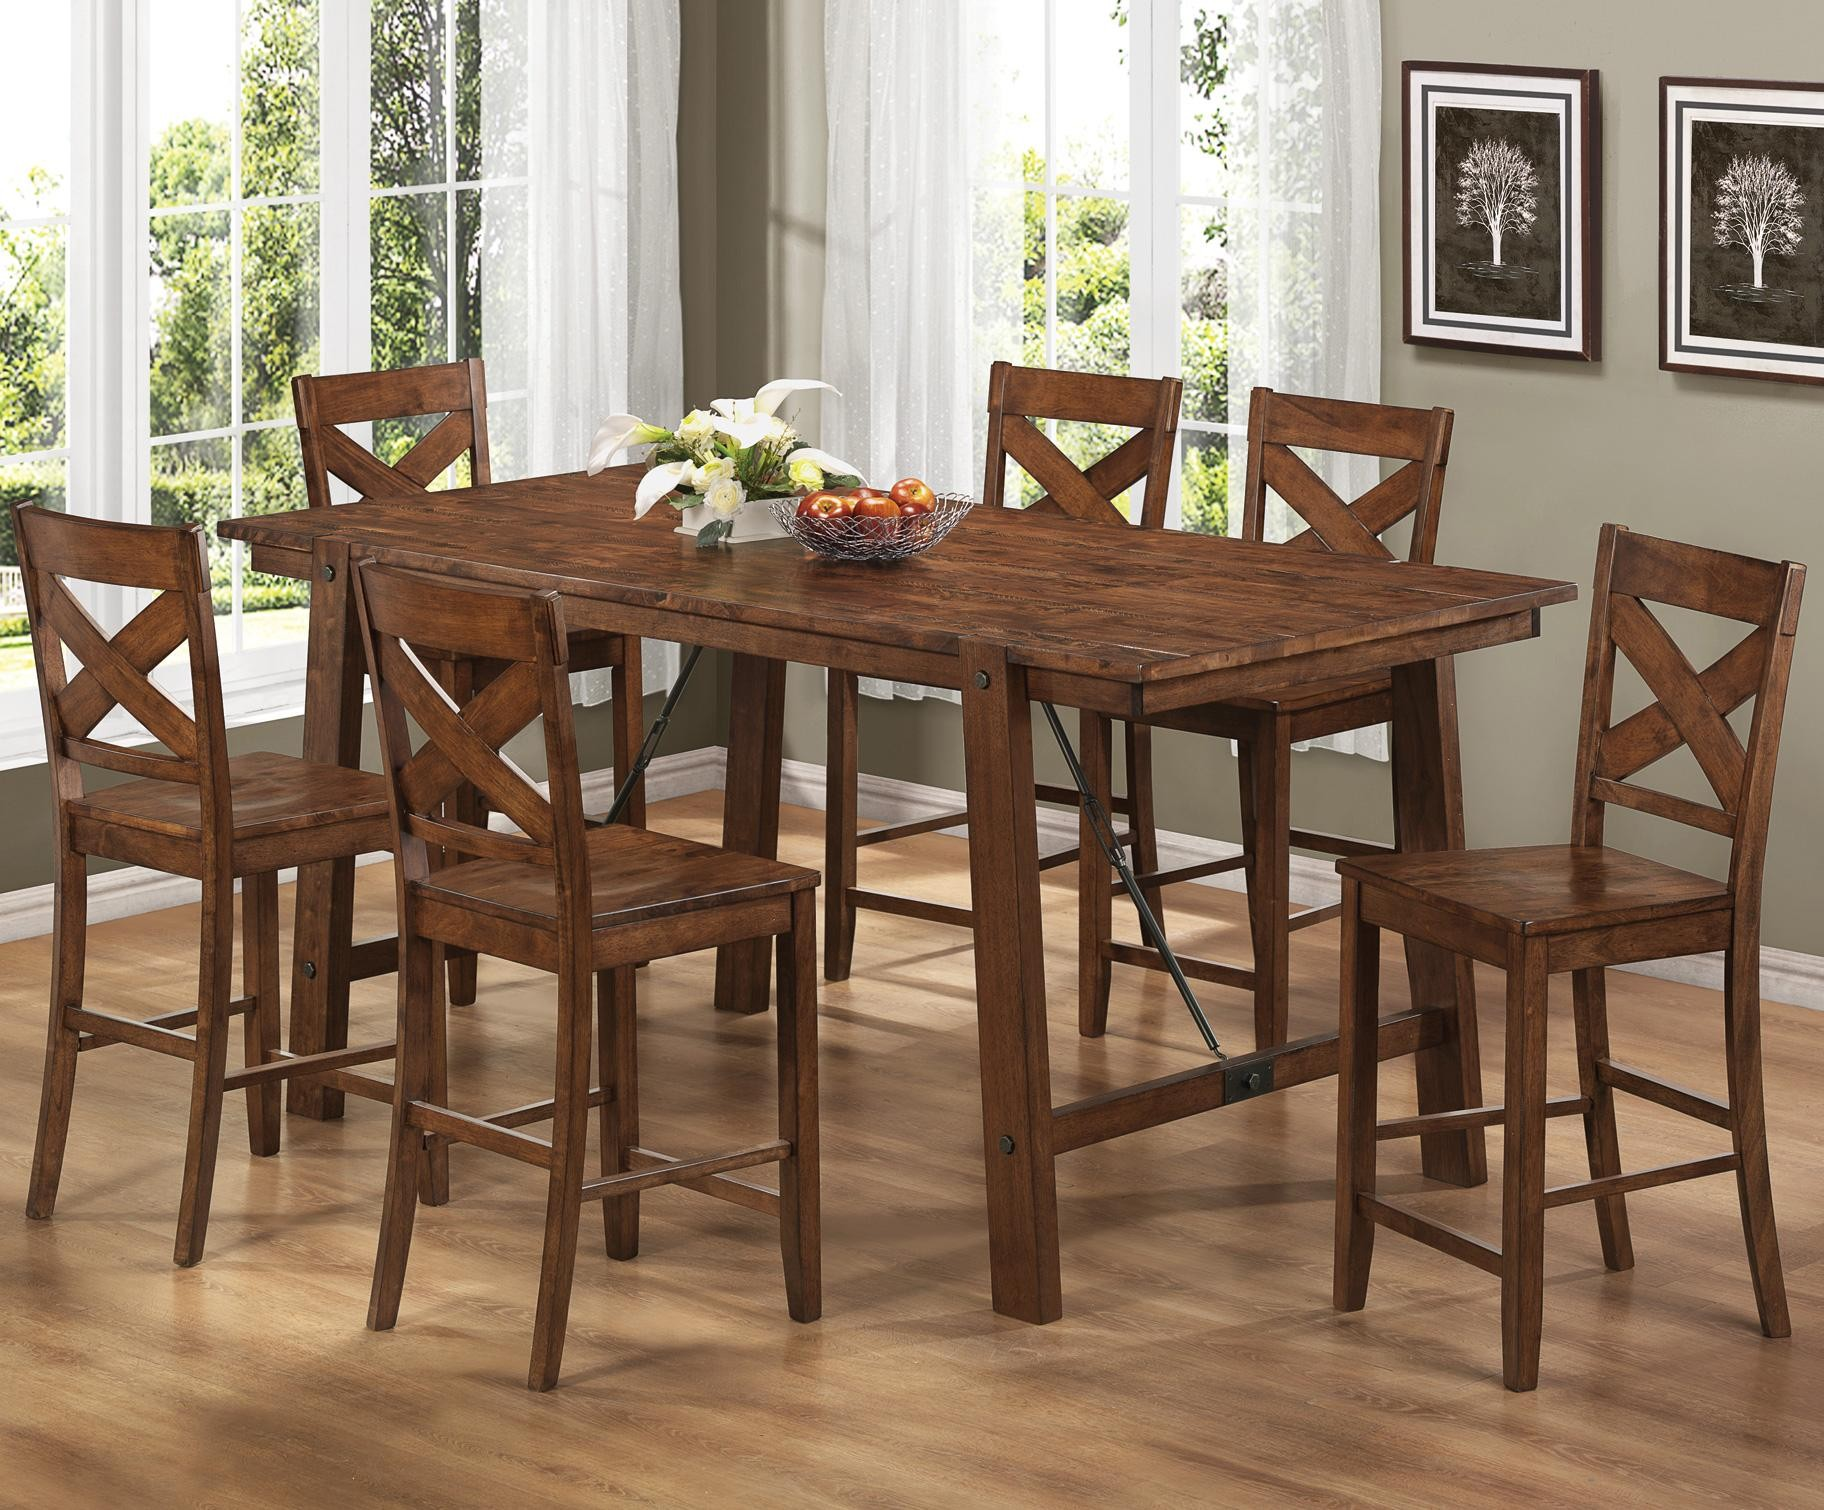 rustic wood kitchen table and chairs office chair you sit backwards high top sets homesfeed